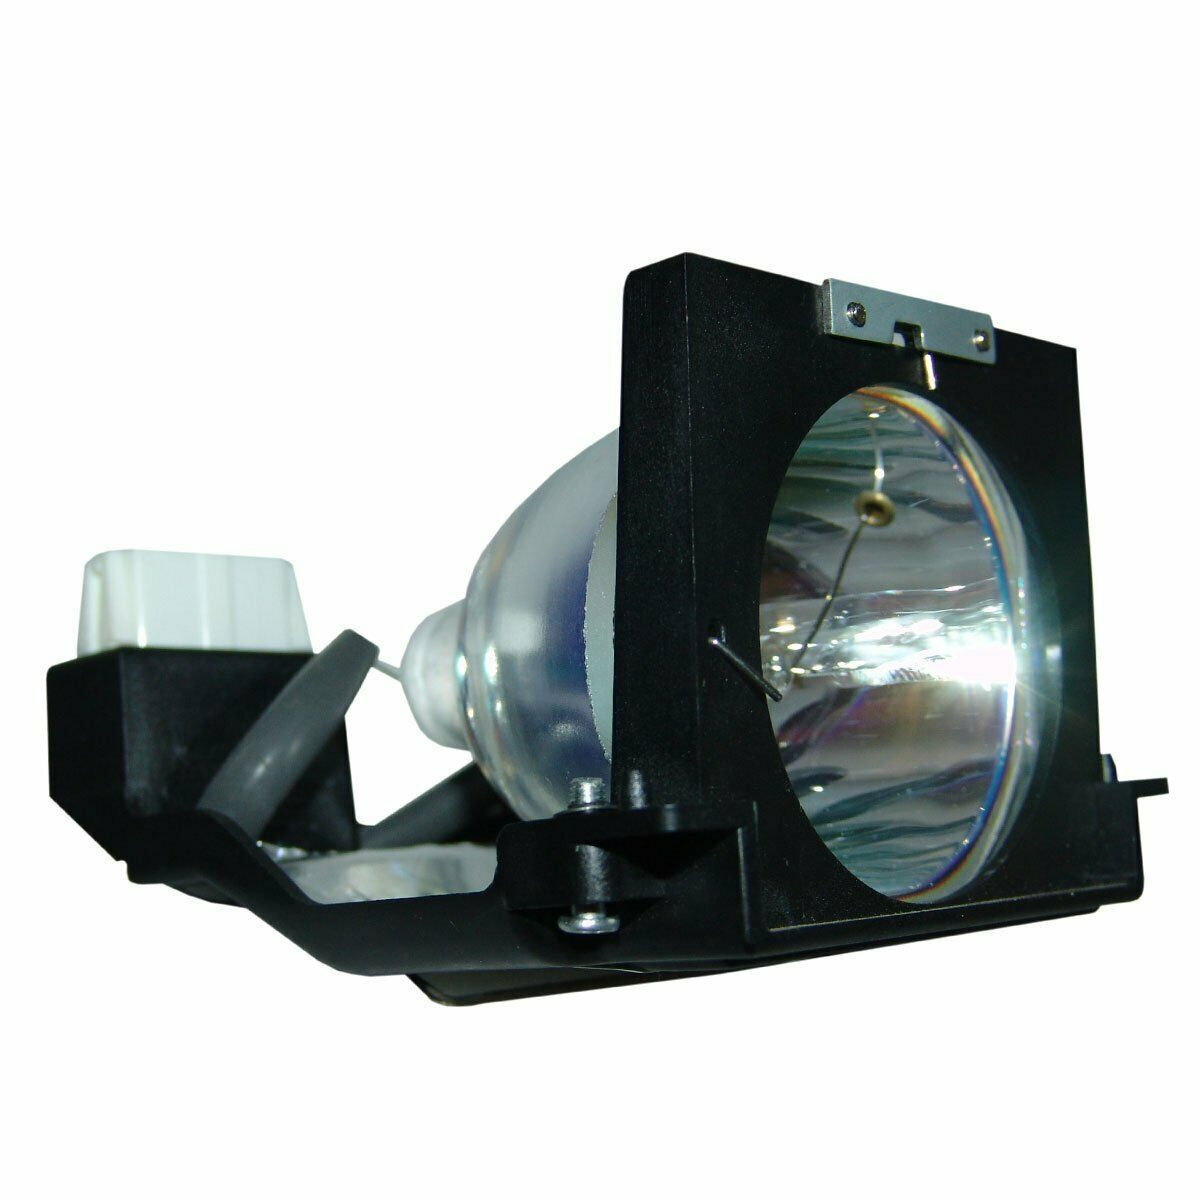 Original LS-5 LS5 Replacement Projection Lamp for Runco Projector Osram Inside